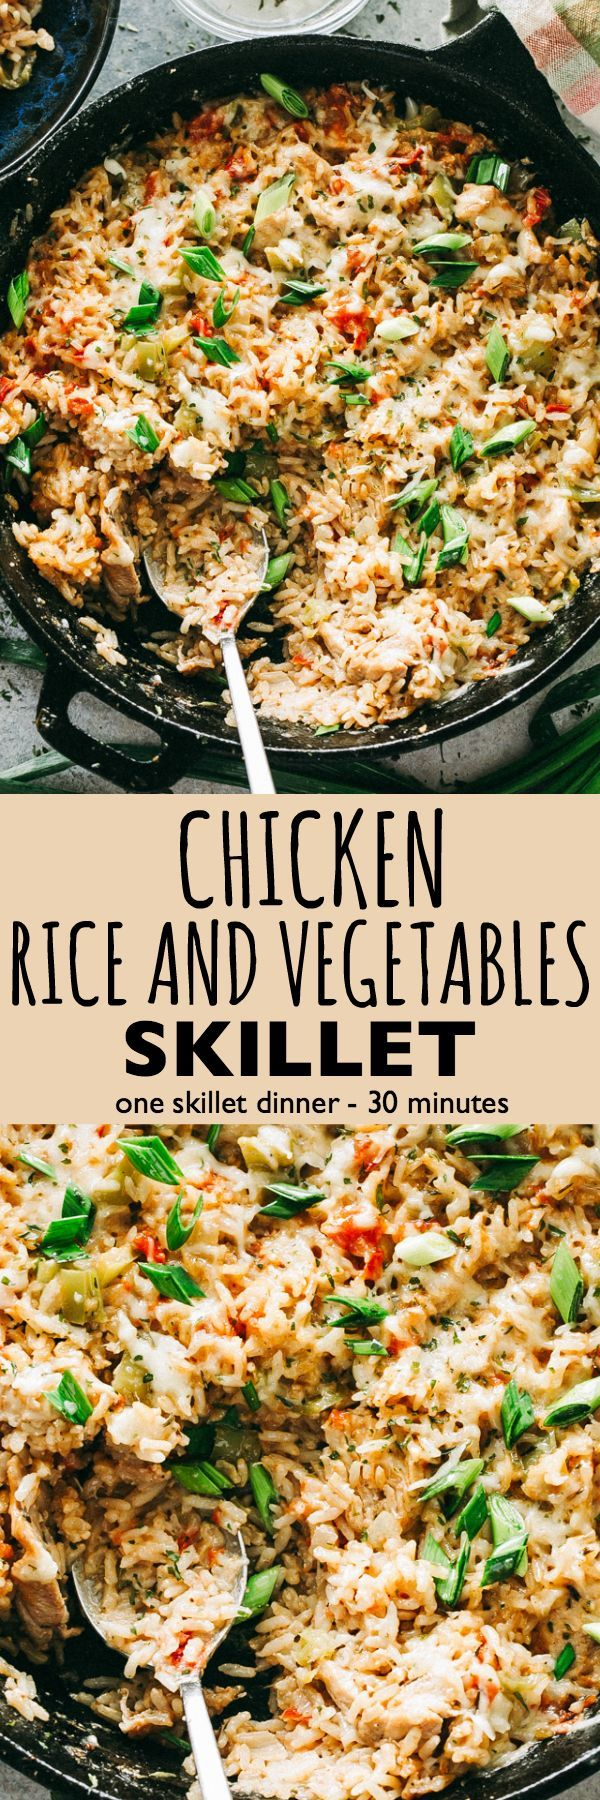 Chicken, Rice and Vegetable Skillet - Deliciously seasoned bed of rice chock-full of chicken pieces, veggies, and so much flavor! Everything you need for a delicious dinner made in just one skillet! #skilletdinner